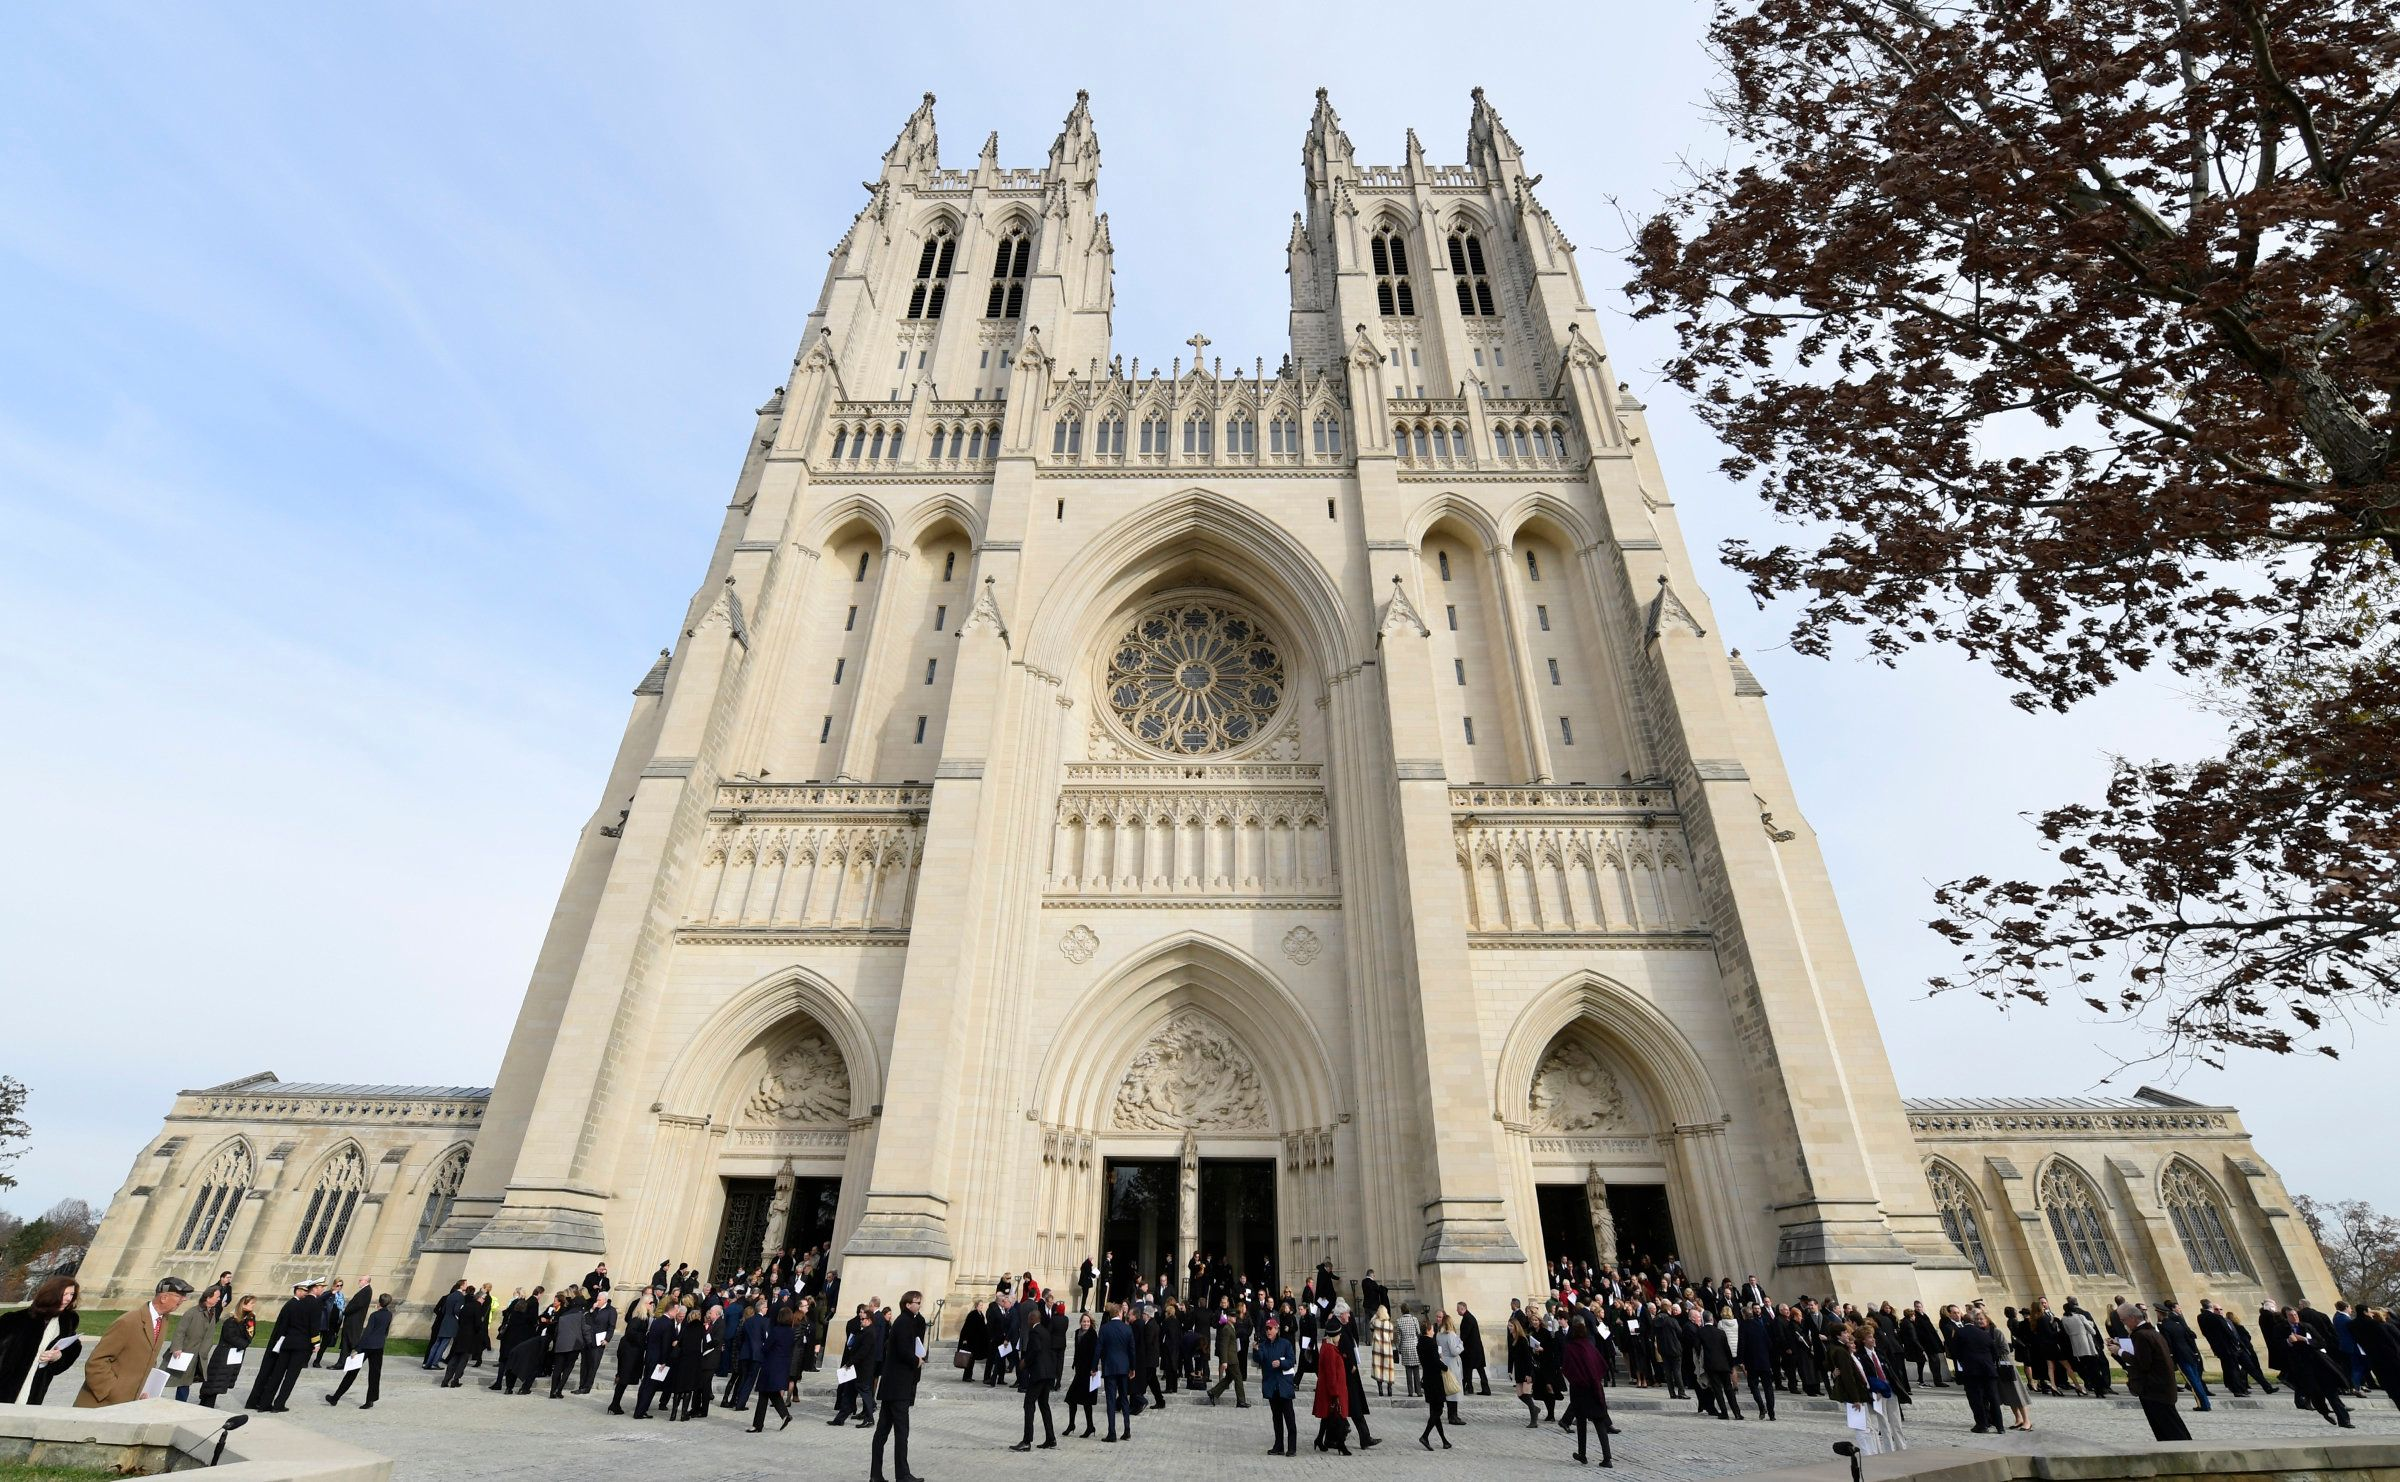 Washington National Cathedral: John McCain's Funeral Did Not Require Trump's